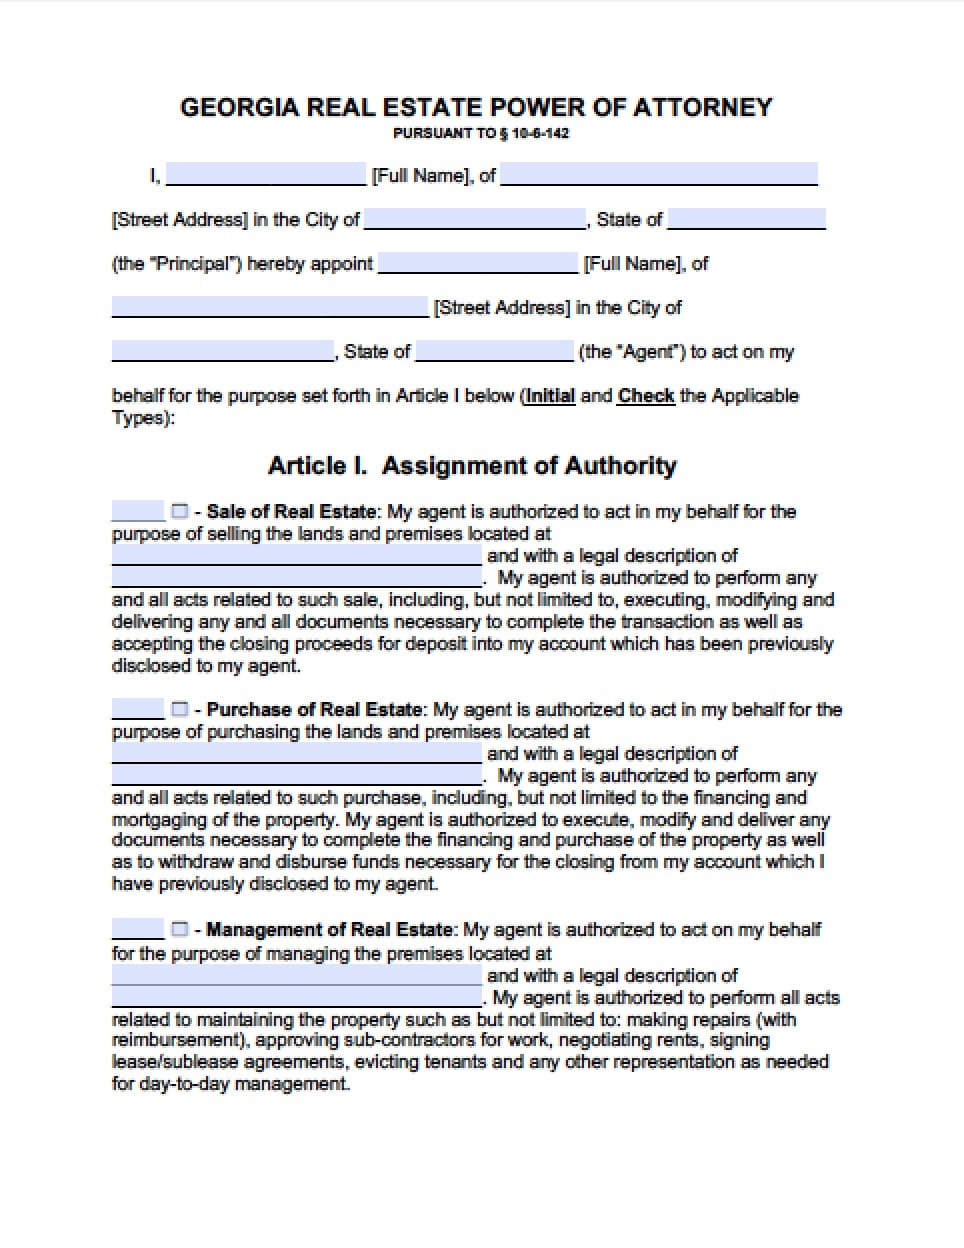 Georgia General Financial Power Of Attorney Form Power Of Attorney